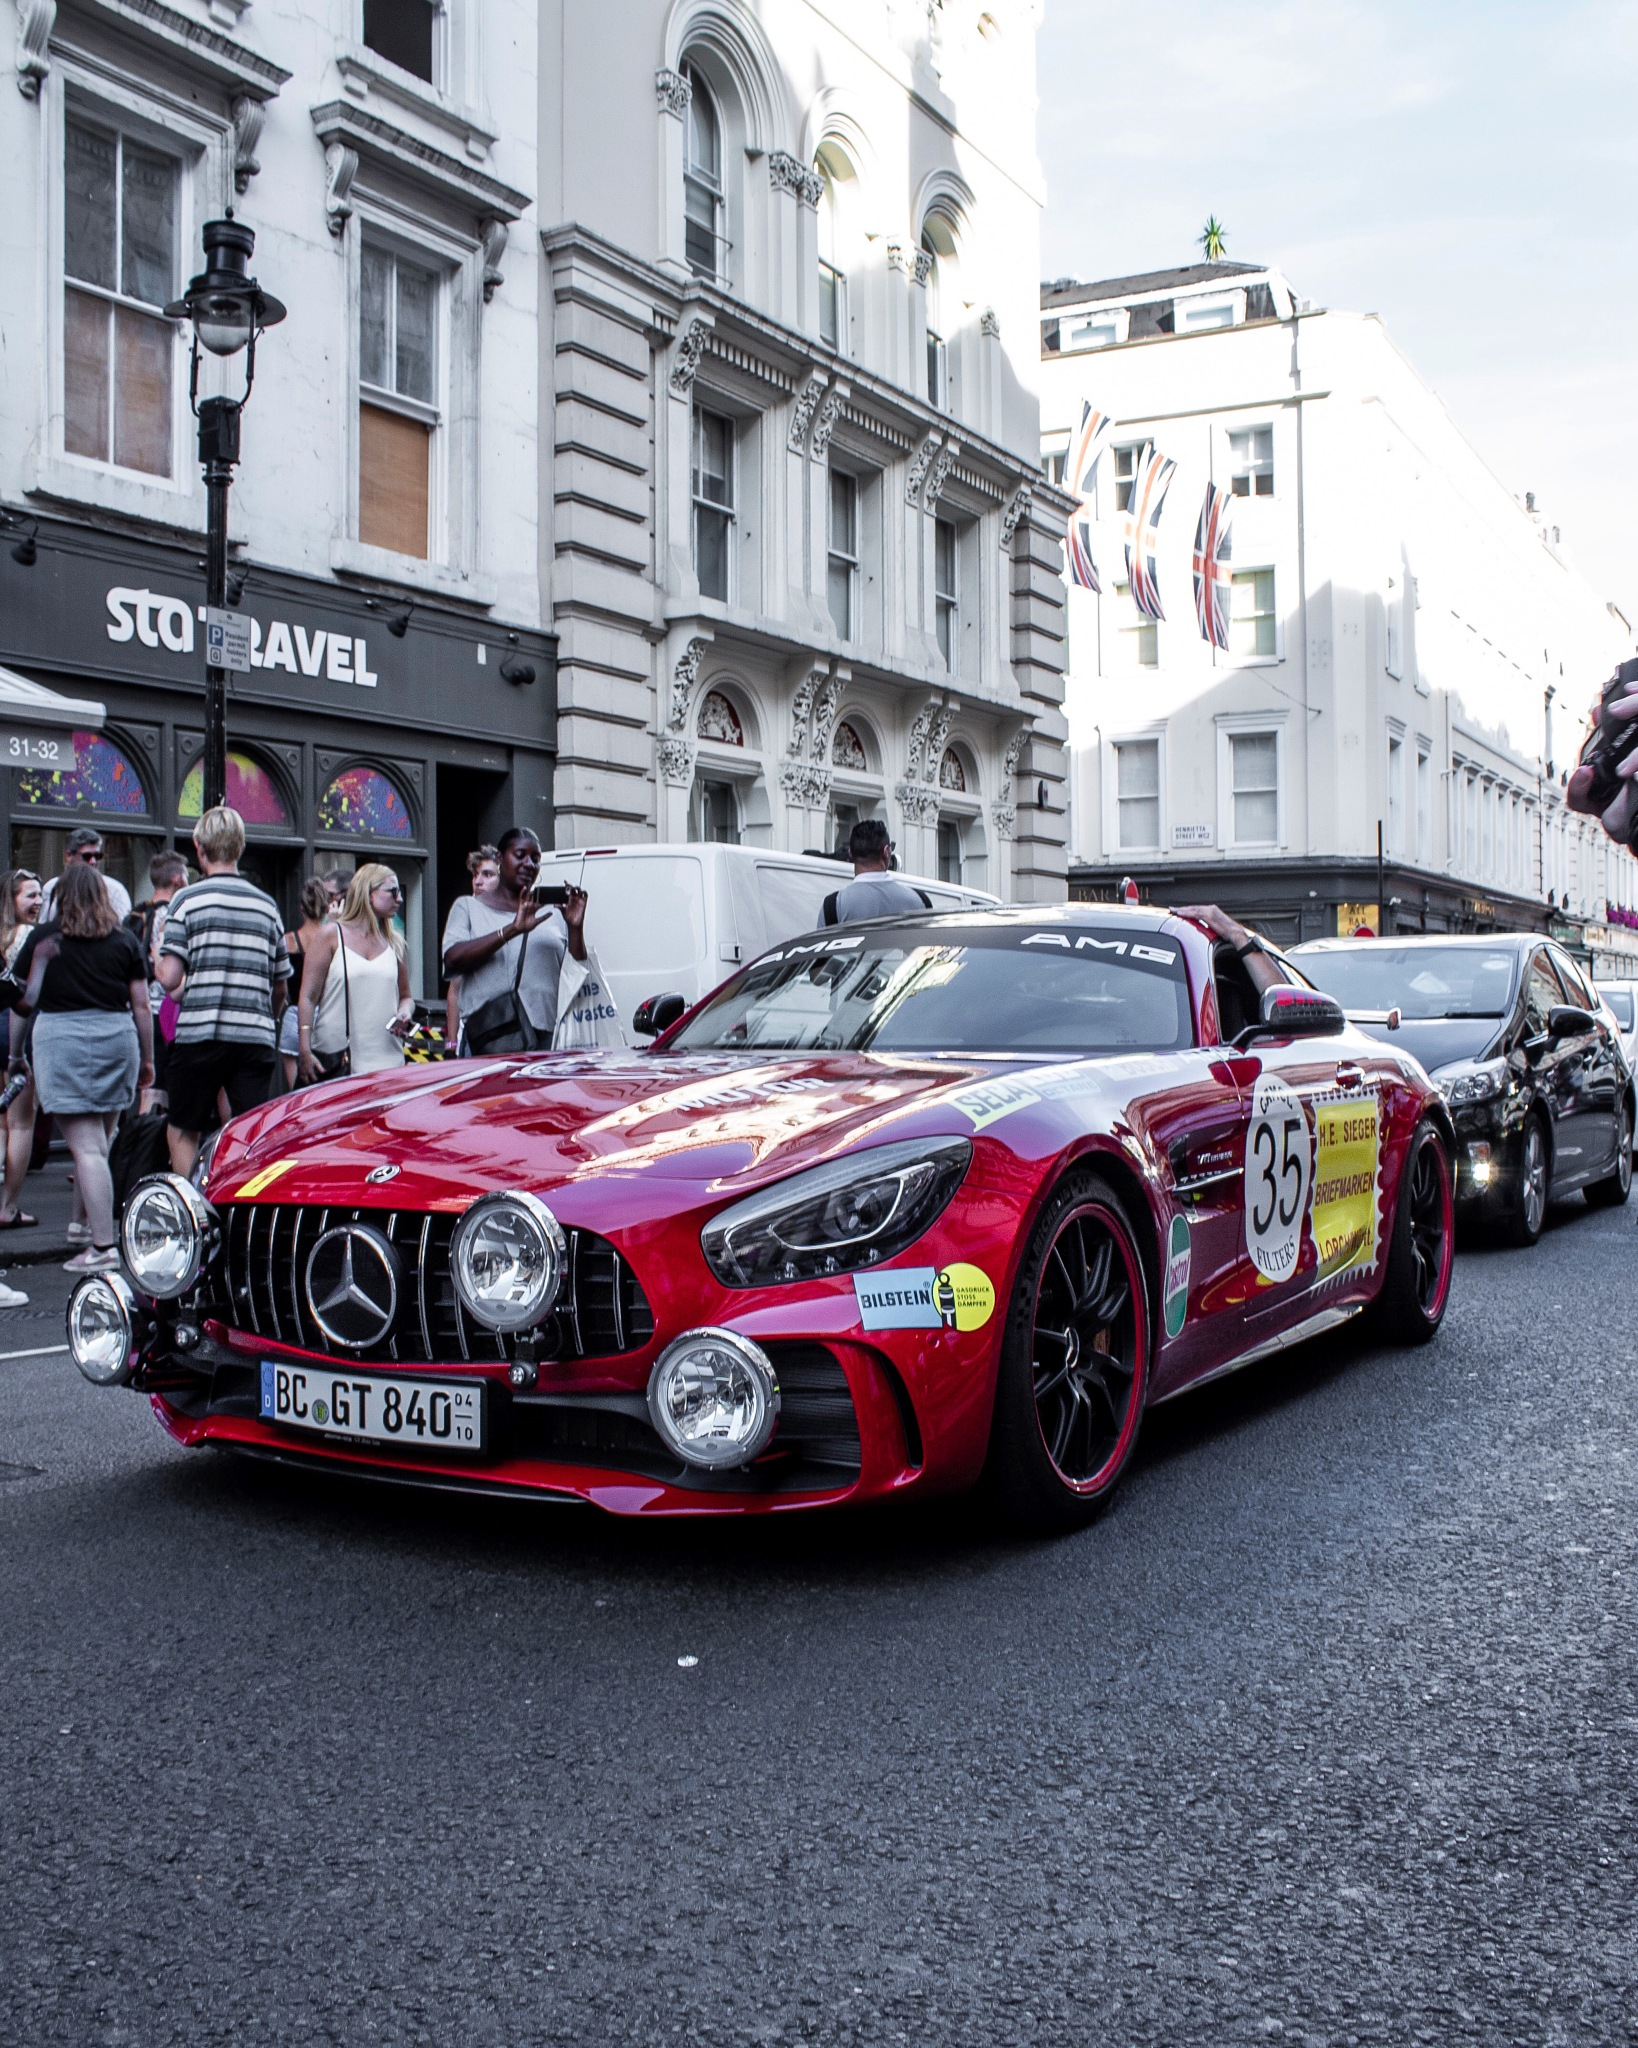 Gumball 3000 by Timotej Peter Valcl